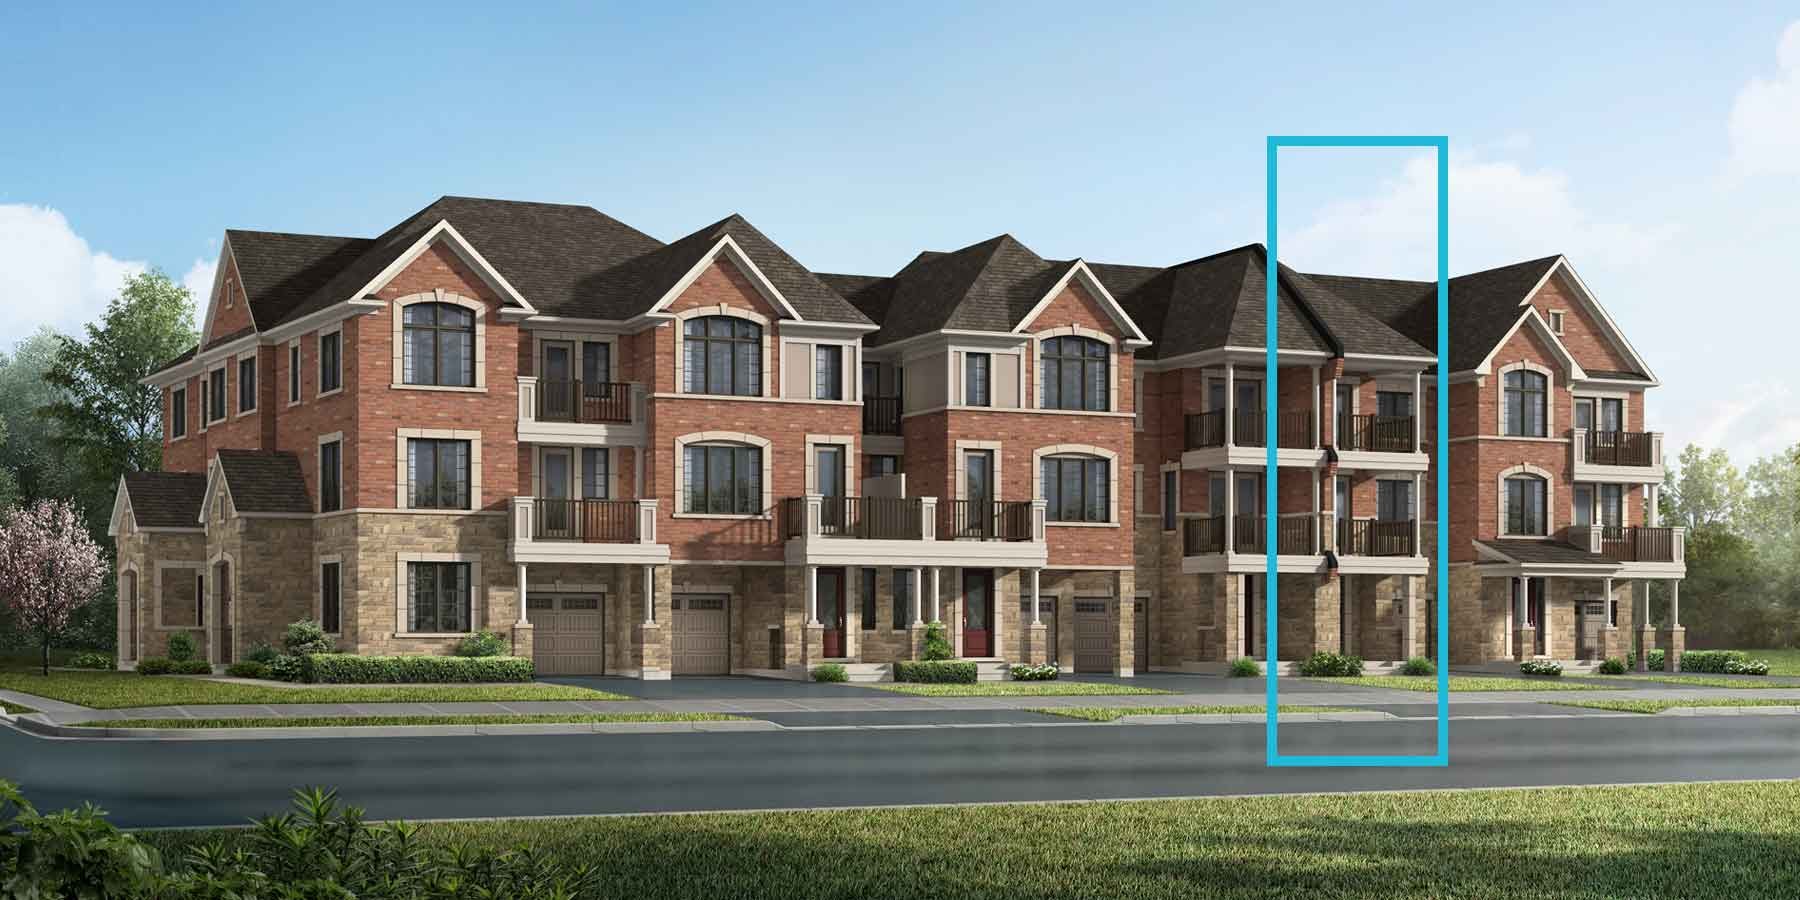 Daffodil Plan TownHomes at Springwater in Markham Ontario by Mattamy Homes